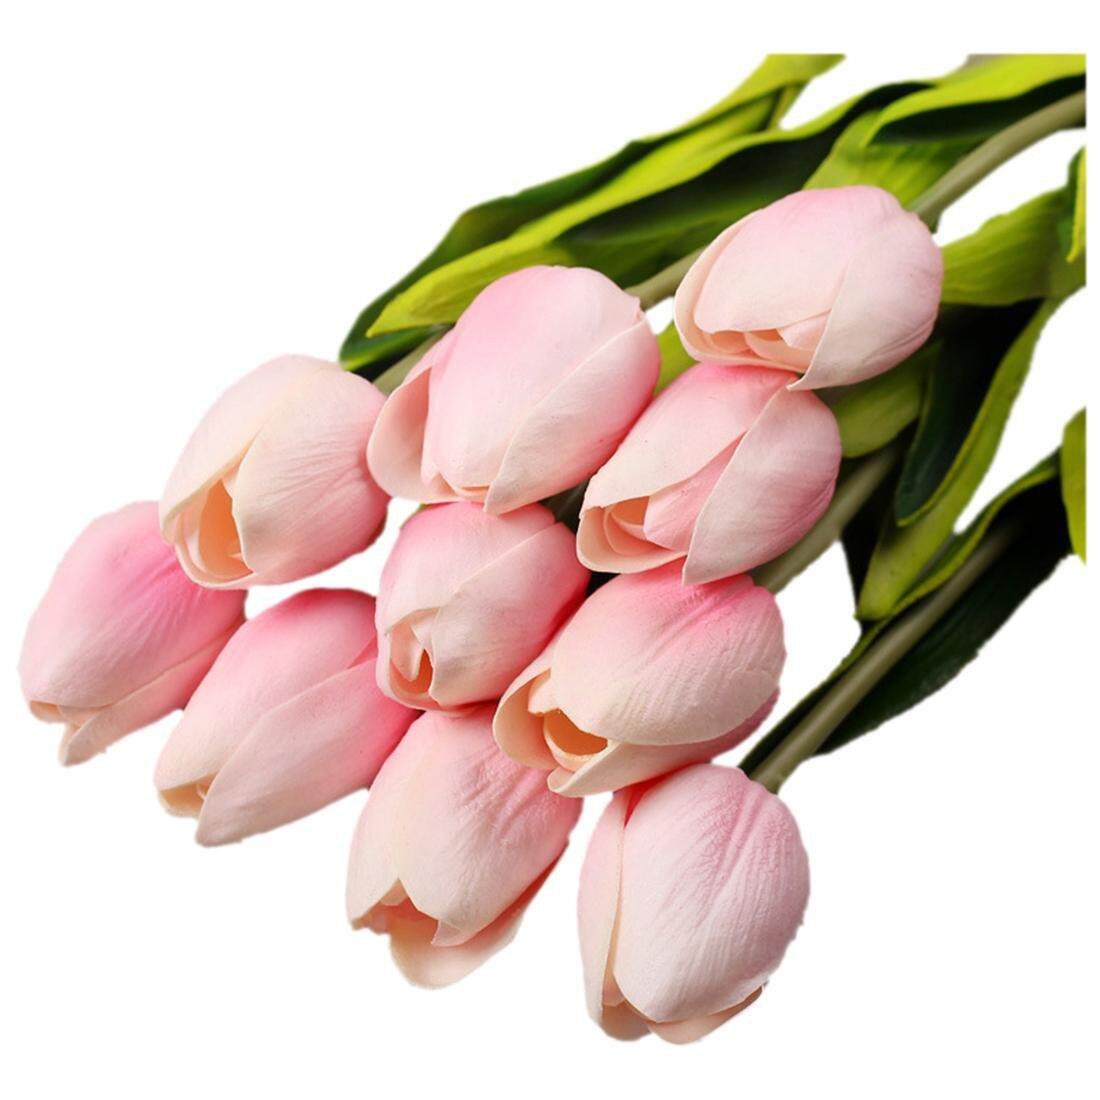 30pcs/lot Tulip Artificial Flower Real Touch PU Artificial Bouquet Flowers For Home Decoration Wedding Decorative Flowers(light pink)